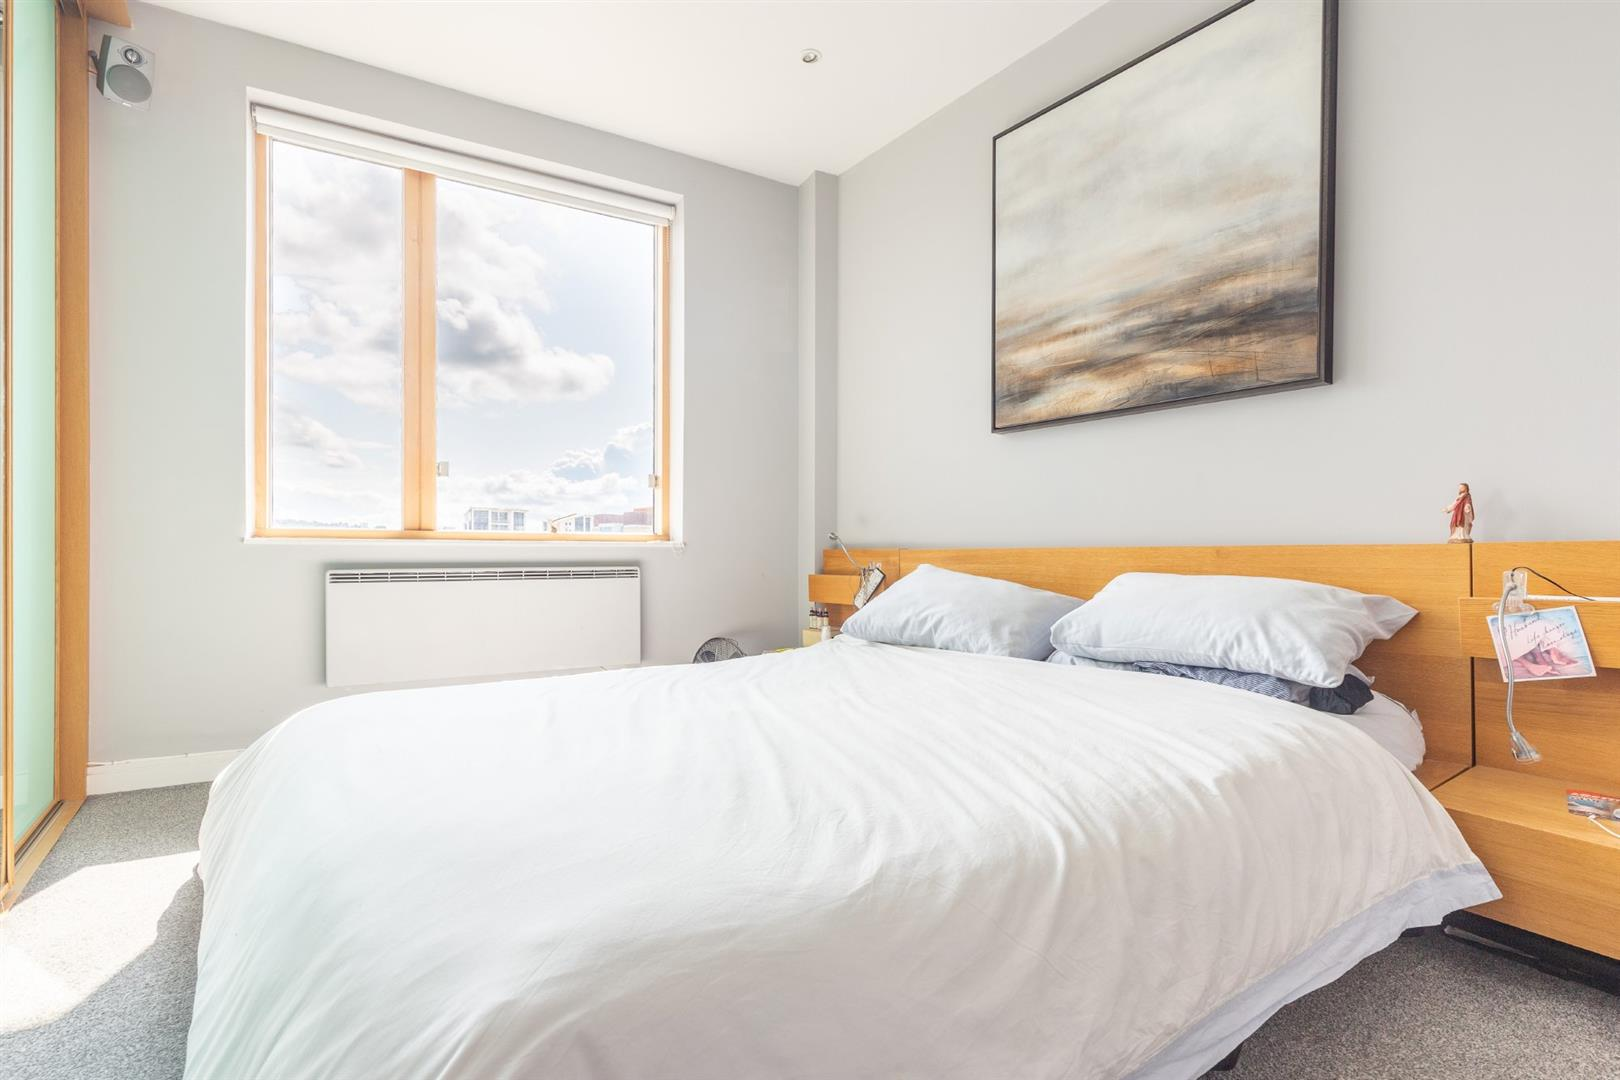 2 bed penthouse for sale in Newcastle Upon Tyne, NE1 3BB 6